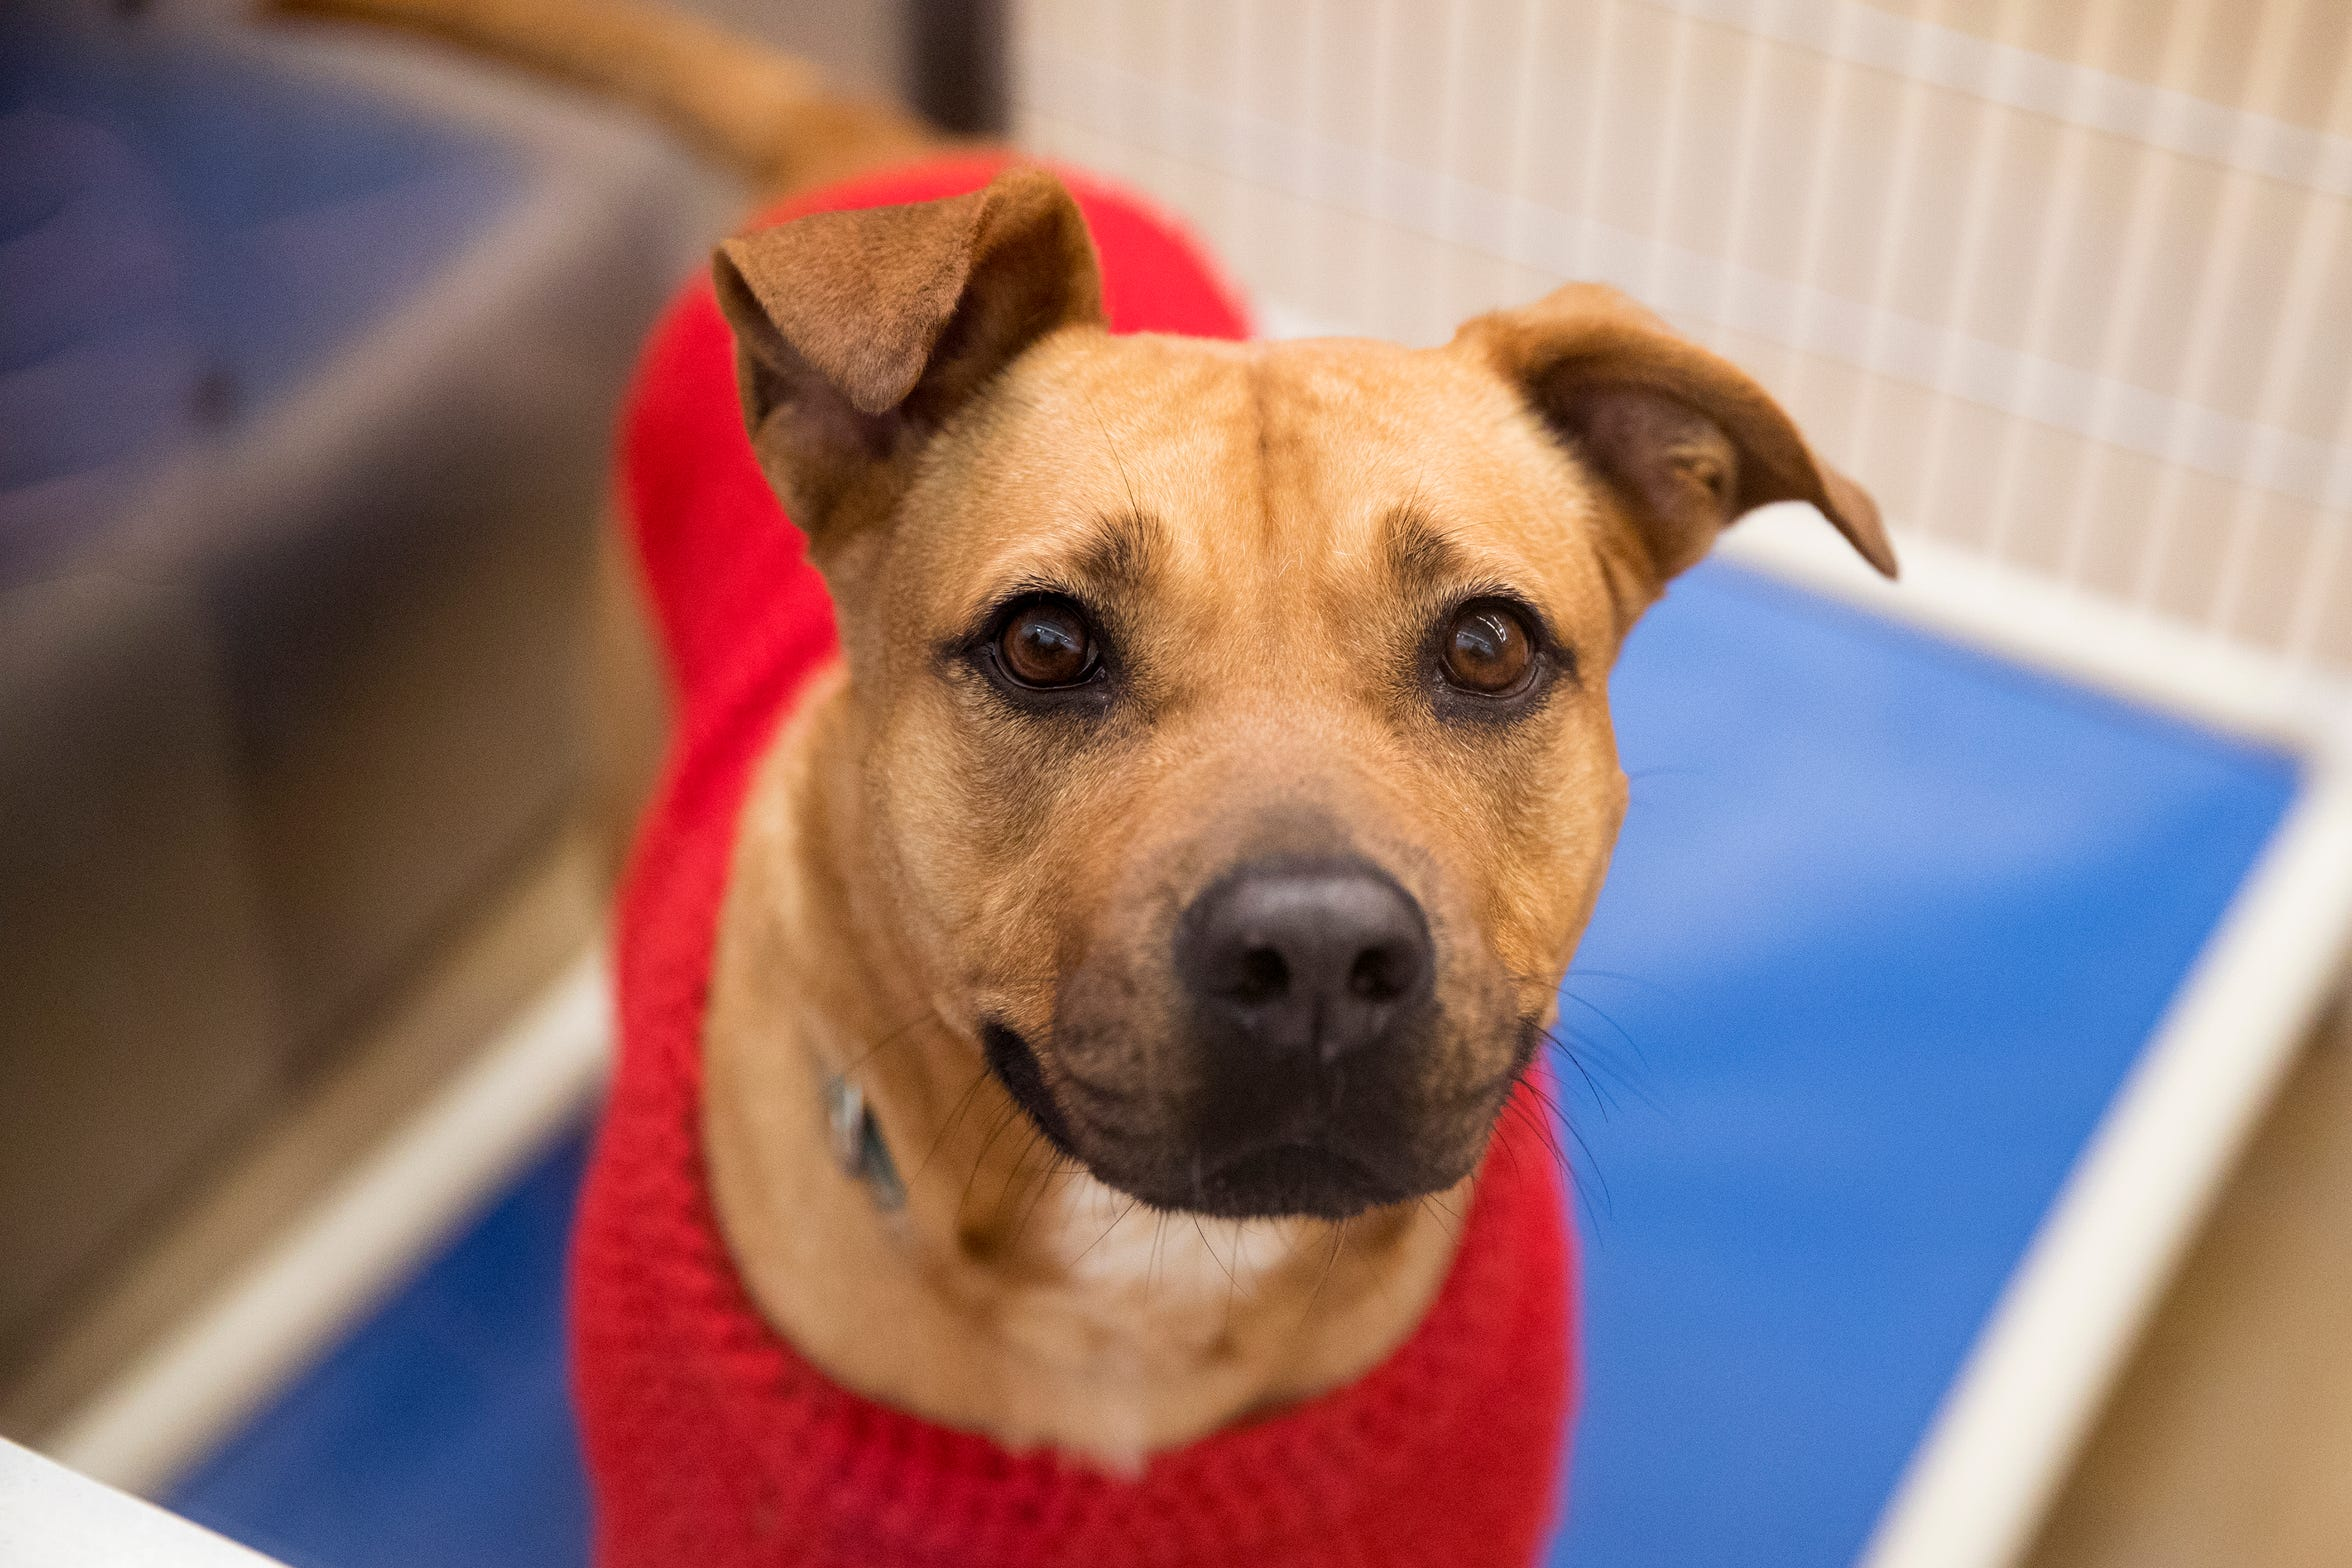 Kiki is one of several dogs at the Gulf Coast Humane Society looking for a forever home. She is two years old, has been in the shelter for six months and loves to play.